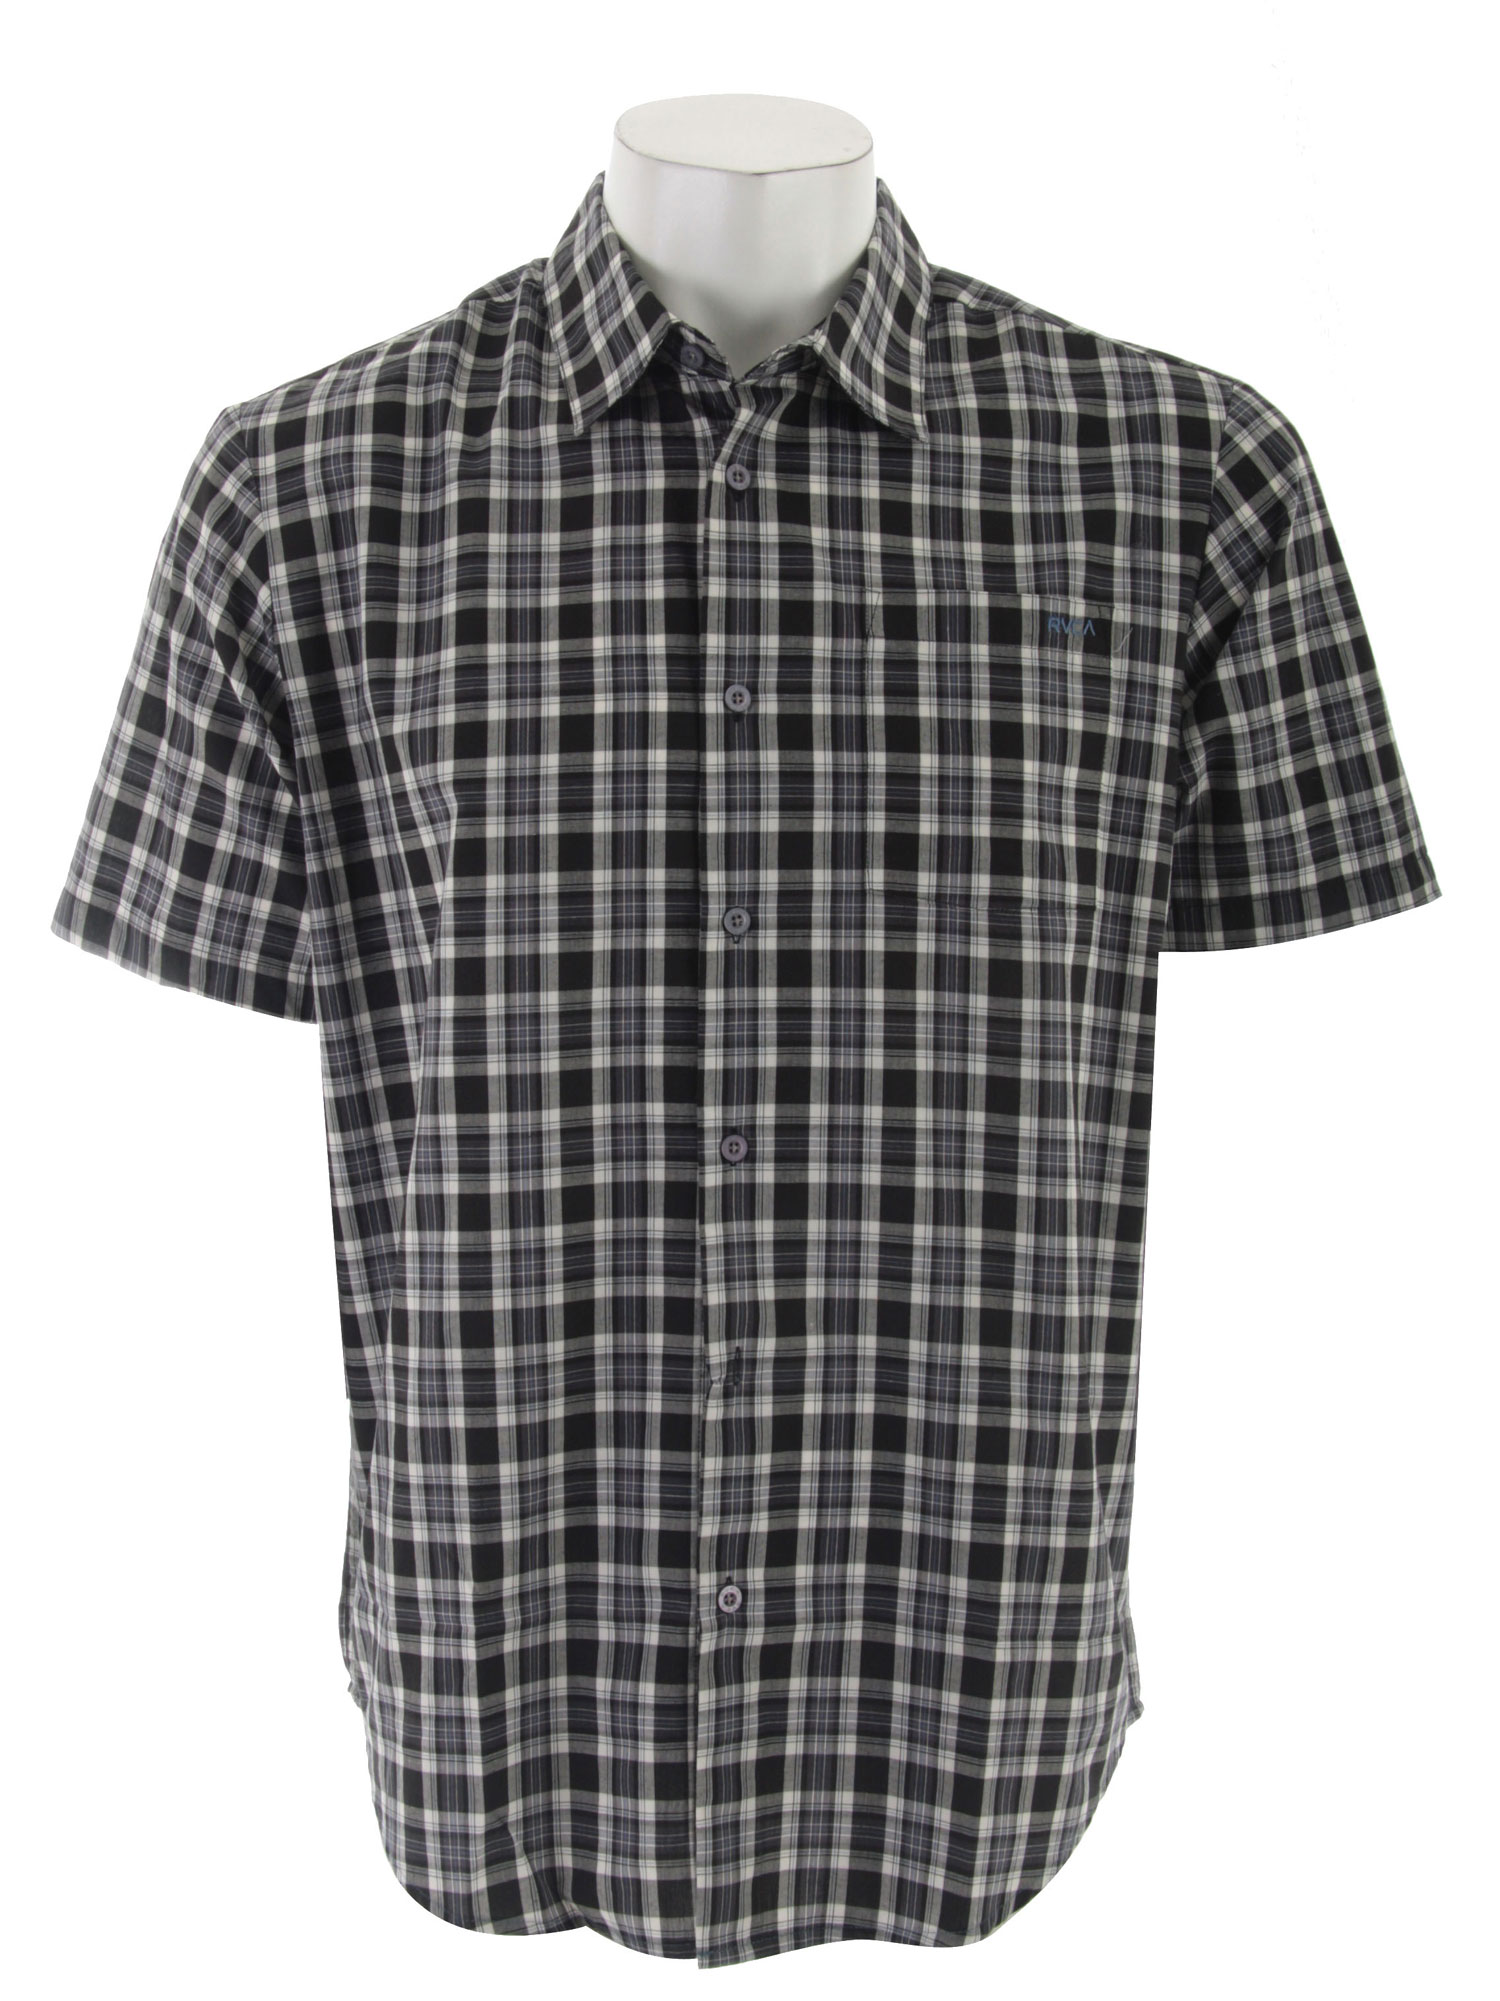 So you've got style on the mountain but what about off the mountain? Sure you can impress the ladies with your double-cork but if you don't have the wardrobe to match you're coming out flat! RVCA has got you covered with the Radio Plaid S/S Shirt collection. This short sleeve button down has a fully functioning front left pocket that you can stuff all the phone number you get into. Combining smart and cool, this casual shirt belongs in any rider's closet.Key Features of the RVCA Radio Plaid S/S Shirt: Cotton/Polyester short sleeve button down Patch pocket at left front chest RVCA embroidery at left chest pocket VA flag label at bottom left side Regular fit - $28.95